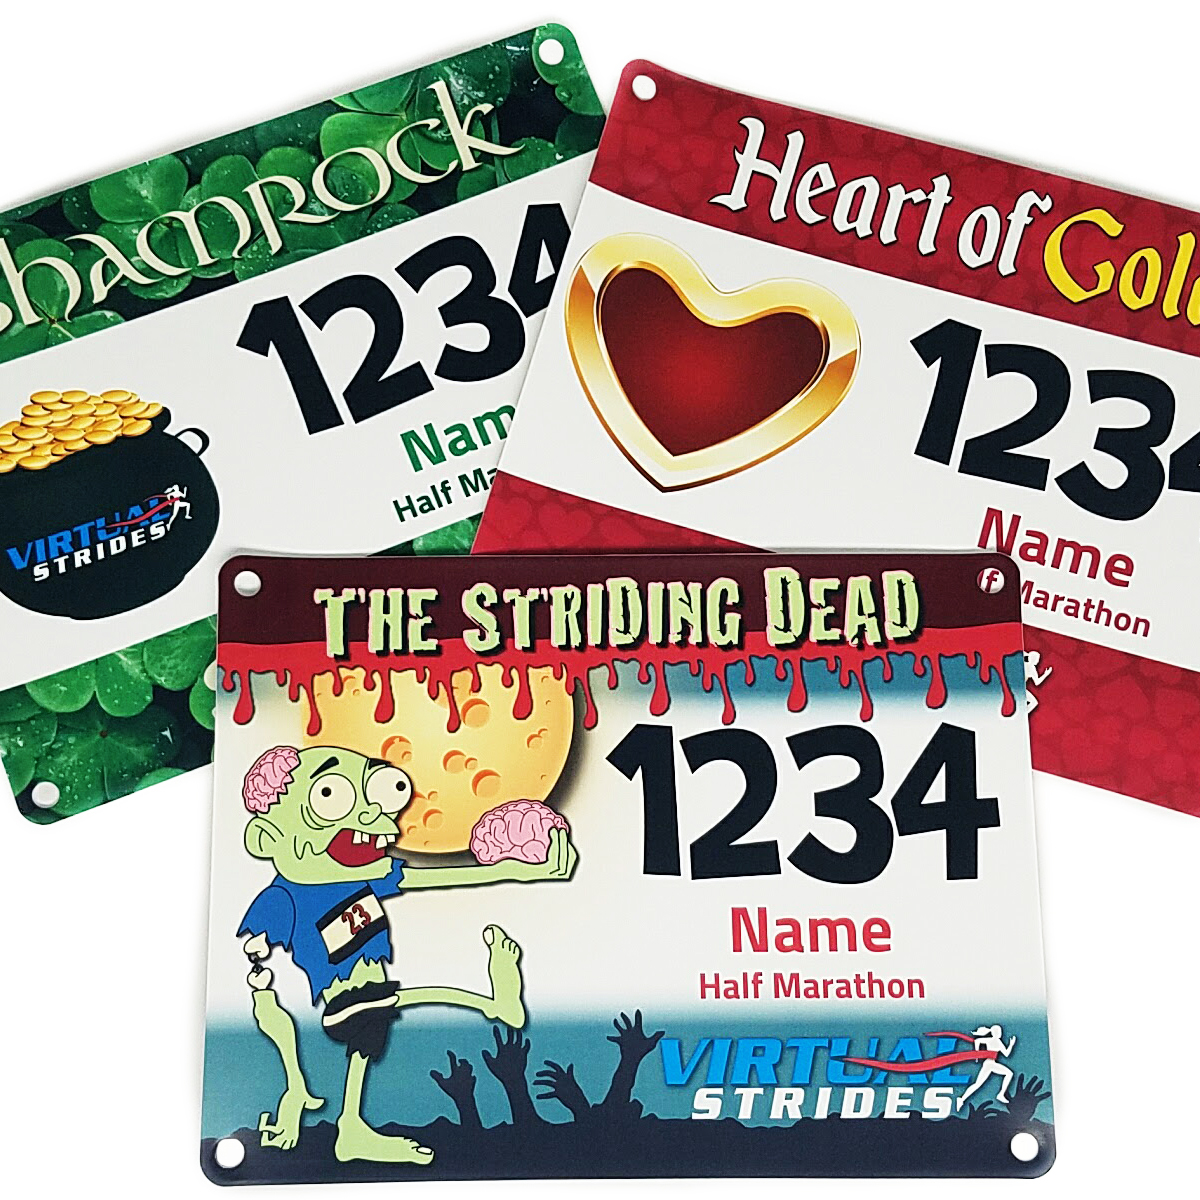 photograph about Printable Race Bibs Free identified as Tailor made Revealed Bibs are Below! Digital Strides